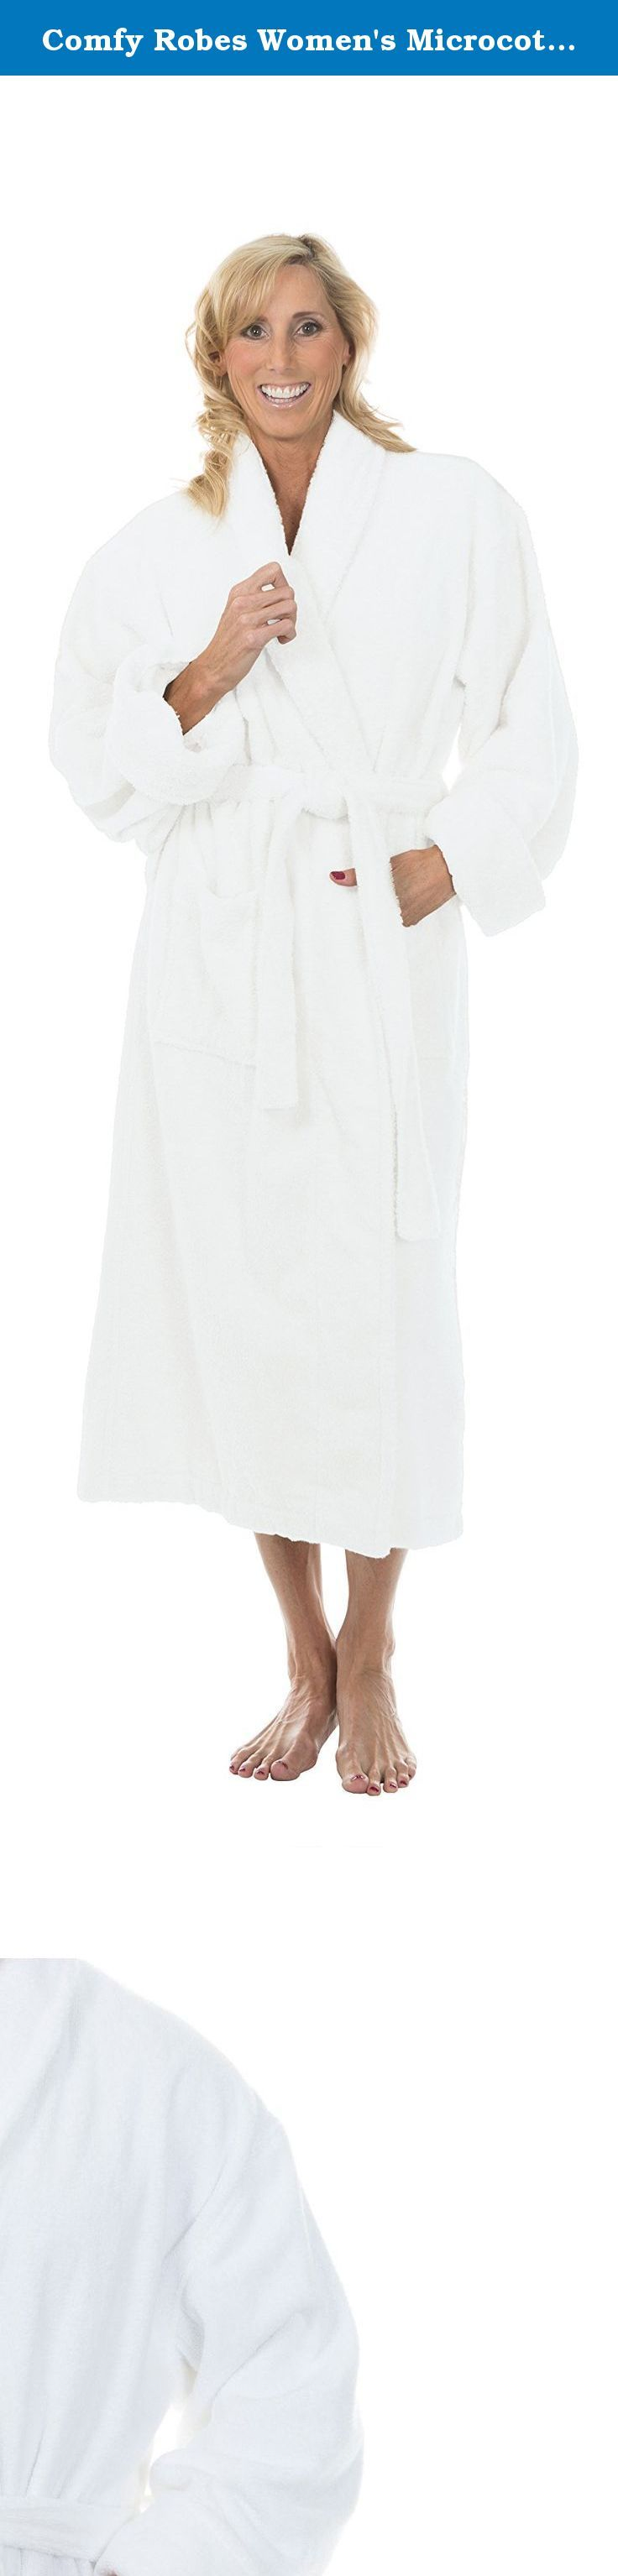 Comfy Robes Women's Microcotton Shawl Collar Bathrobe, L/XL White. This robe is made of 100% microcotton terry fabric, a recent innovation in the robe industry. Uniquely plush, luxuriously soft and a wonderfully absorbent material that makes this an exciting new type of robe, designed with comfort in mind. Customers are always surprised how soft and wonderfully comfy this fabric is and it has become a customer favorite!.